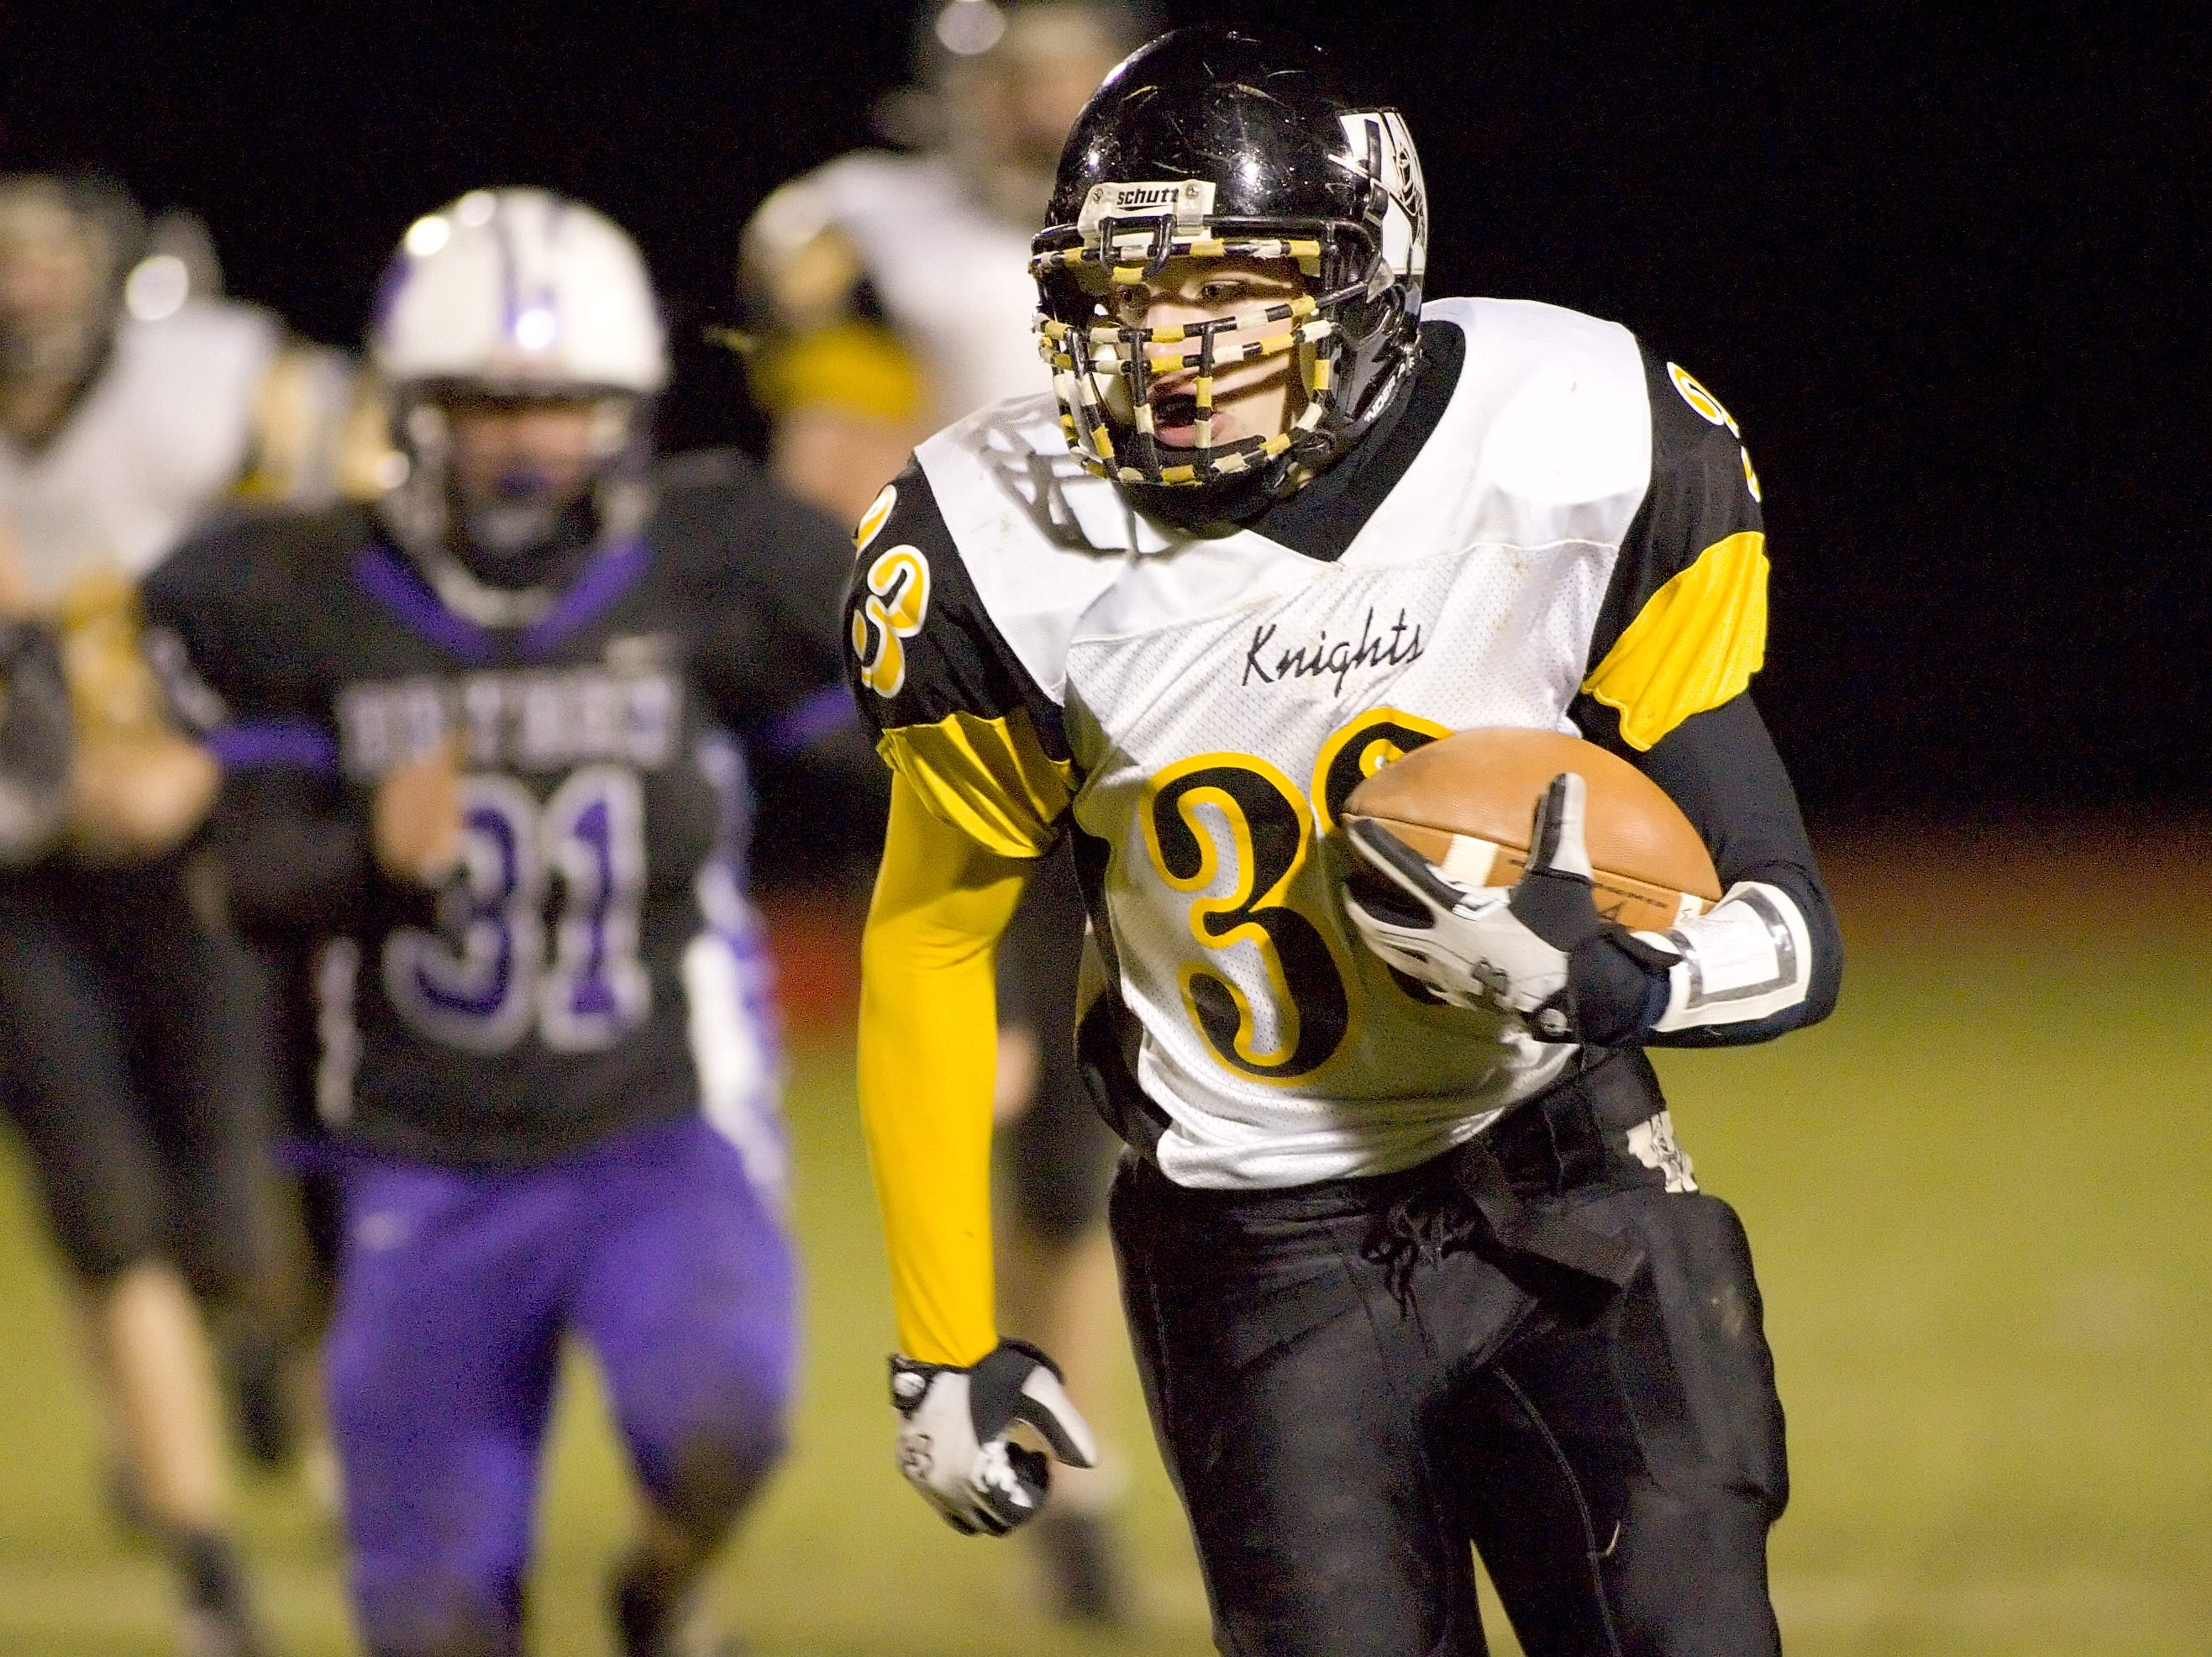 From 2008: Windsor's Josh Quinn rushes the ball upfield as Dryden's Willy Enslow trails Saturday at Dryden High School.